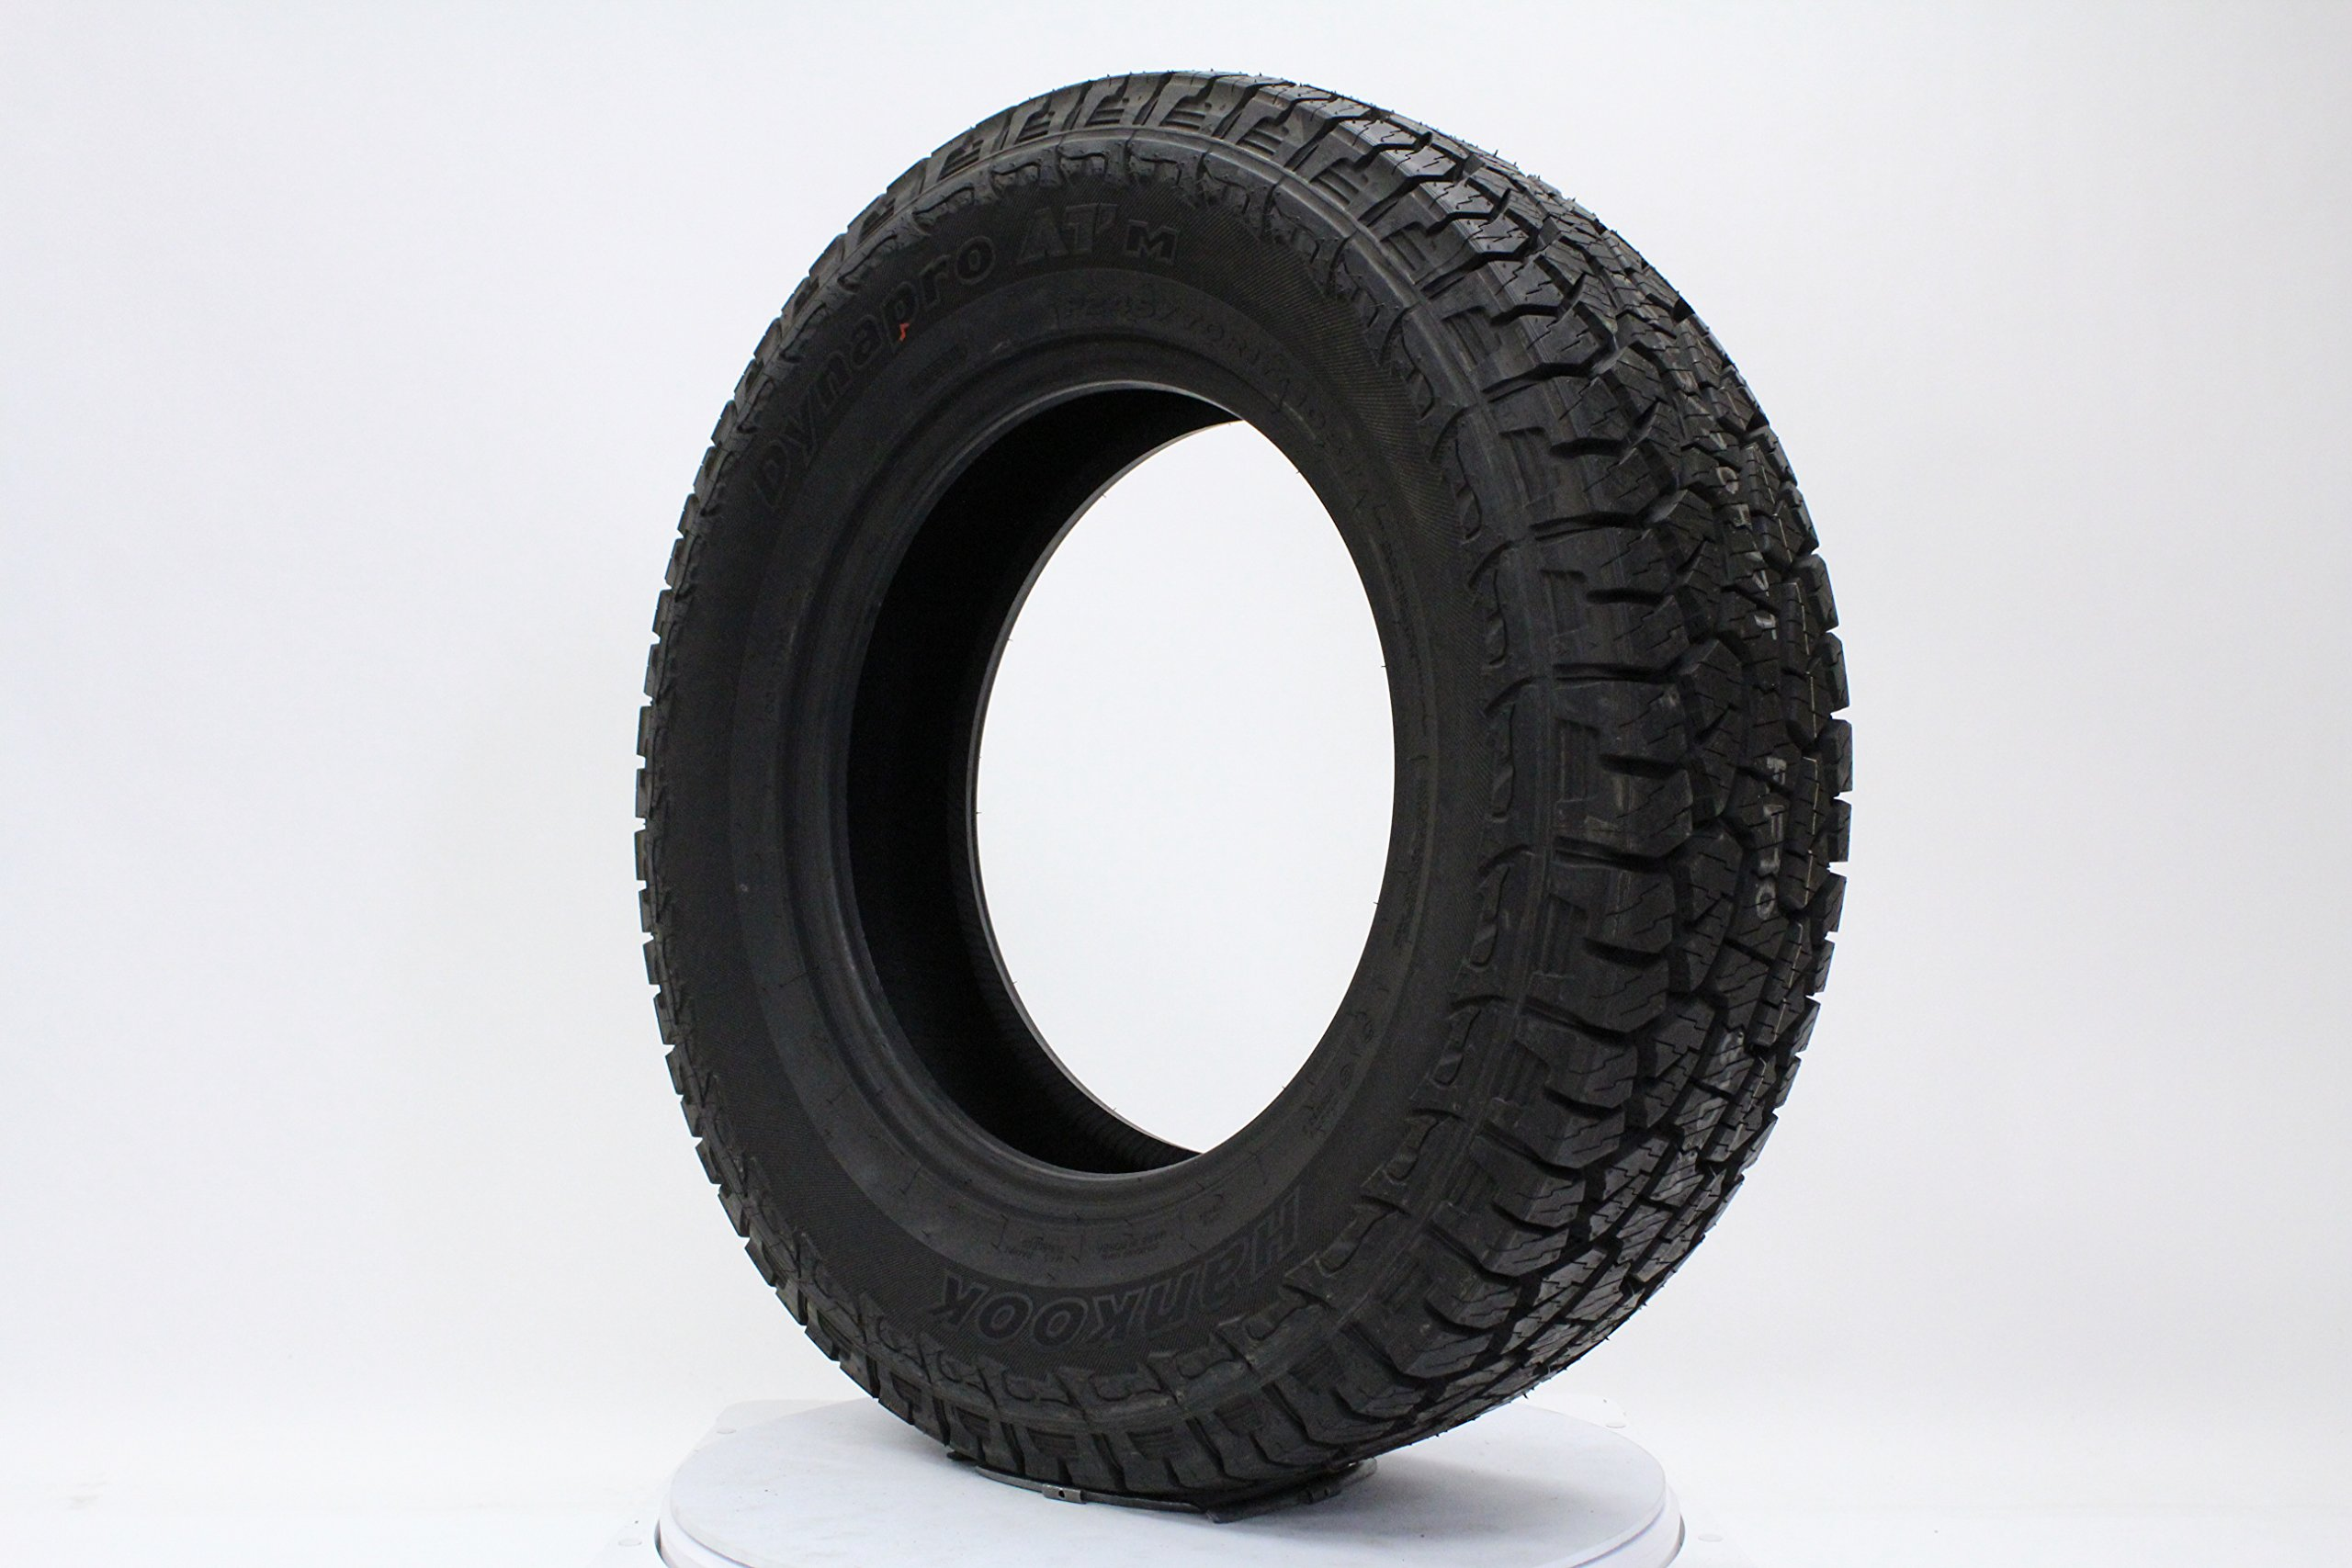 "Hankook DynaPro ATM RF10 Off-Road Tire – P265/70R17"" 113T"